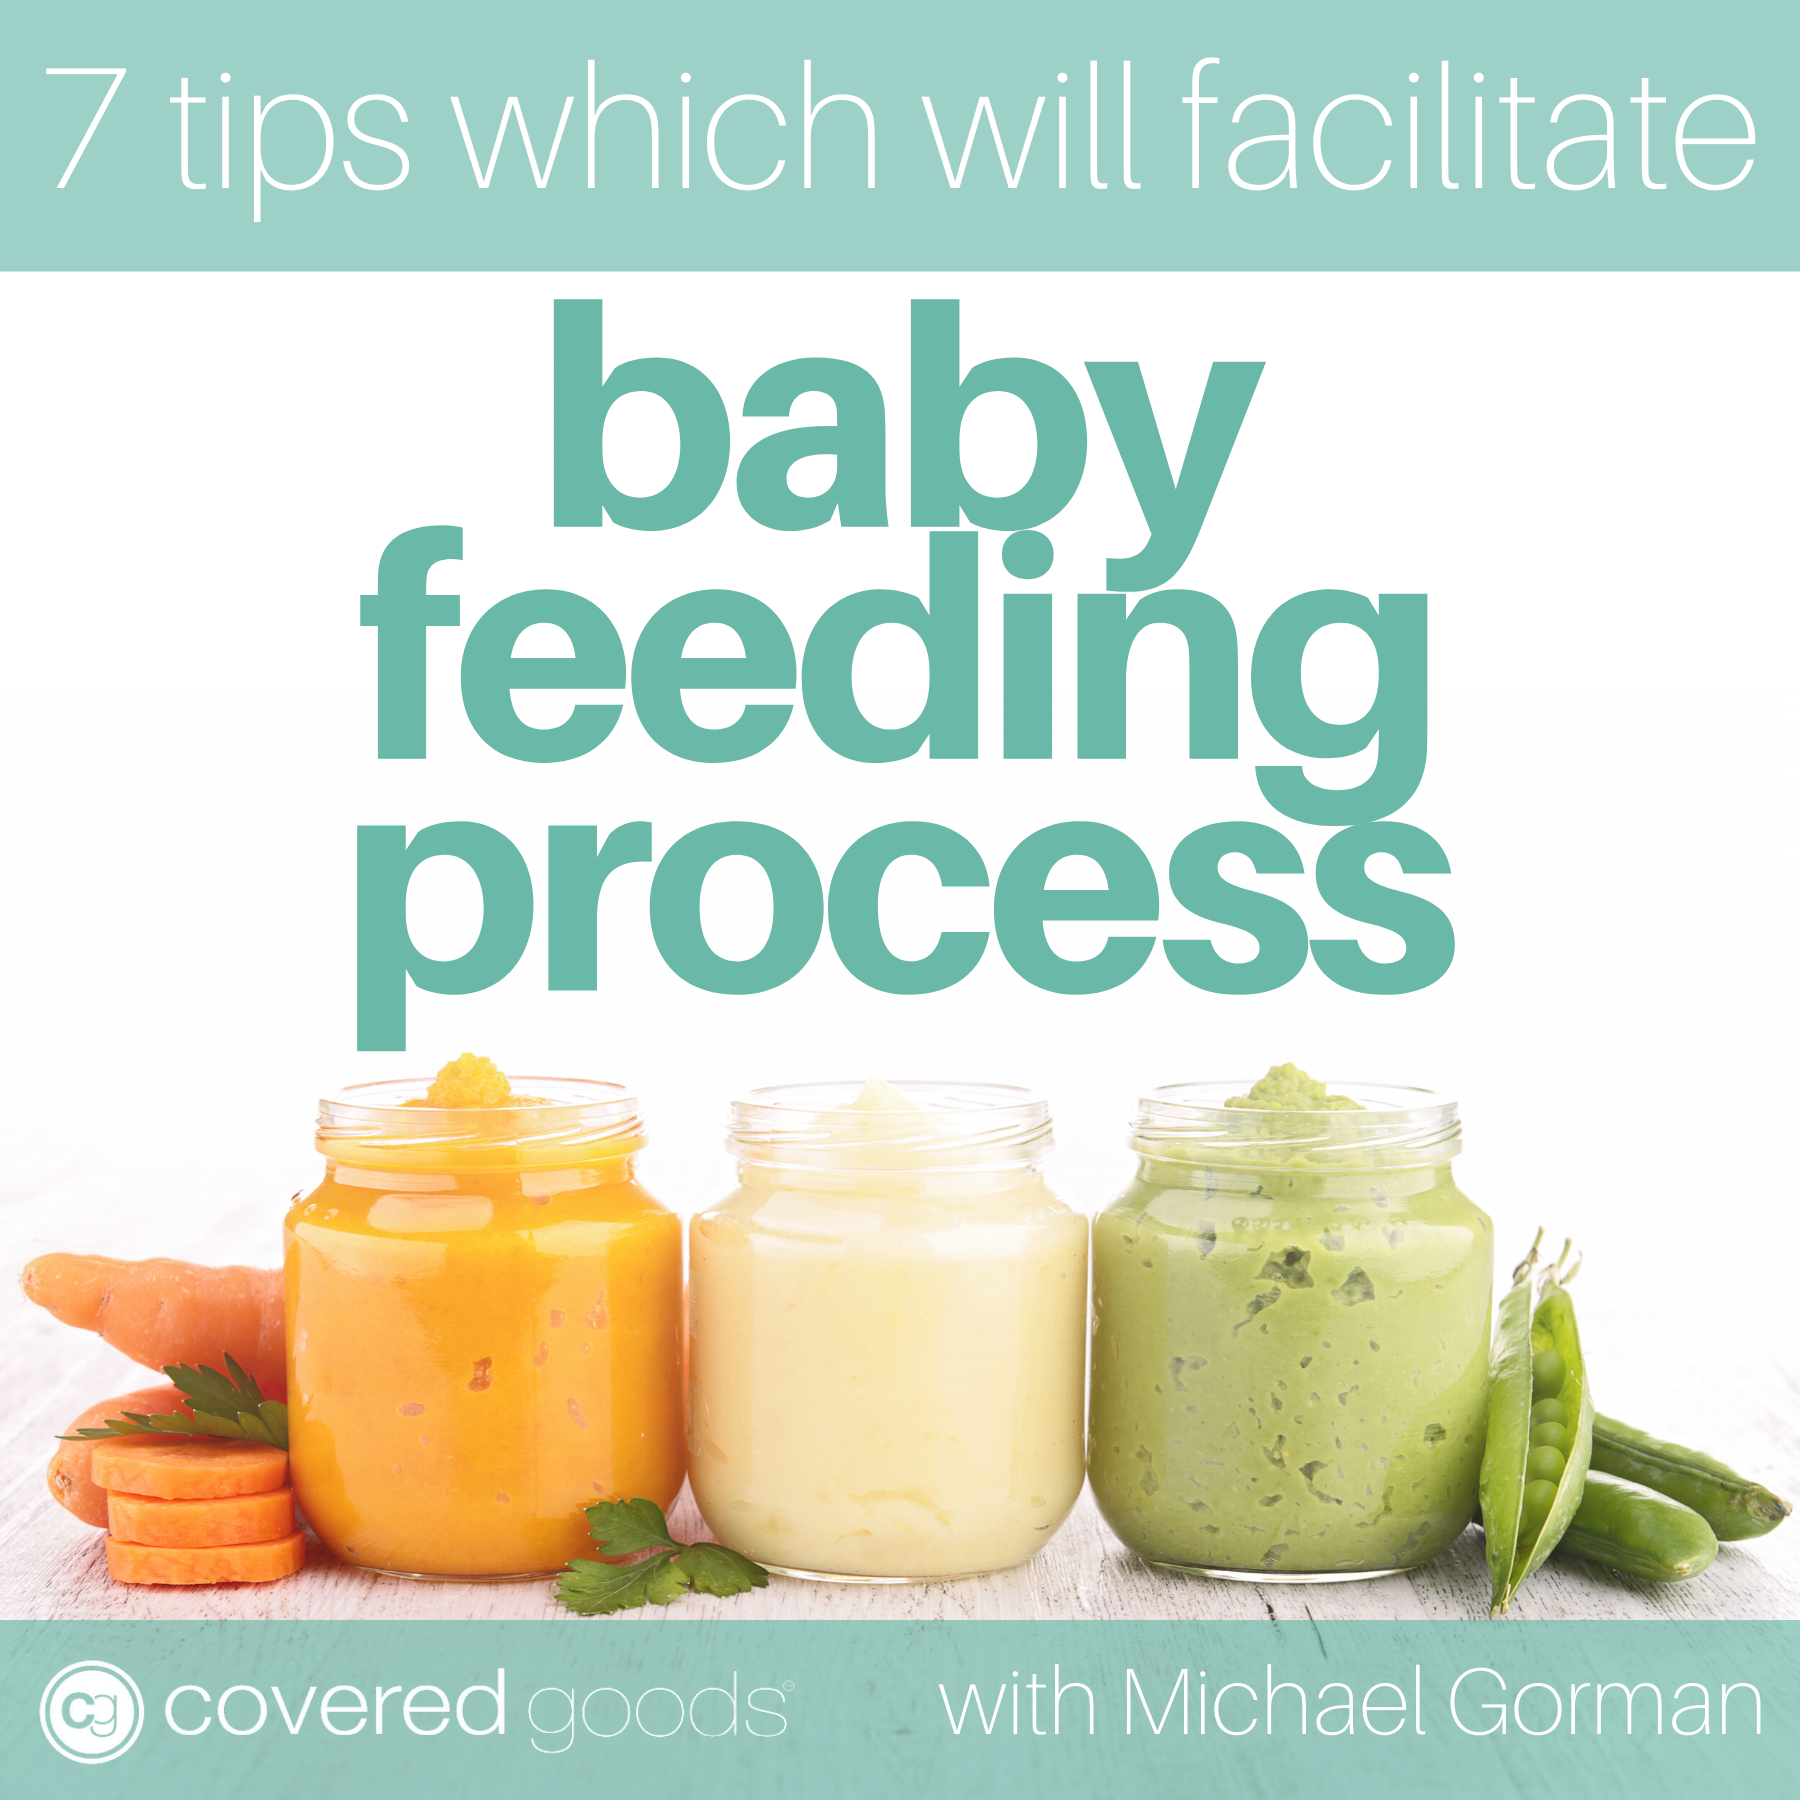 7 Feeding tips for Baby